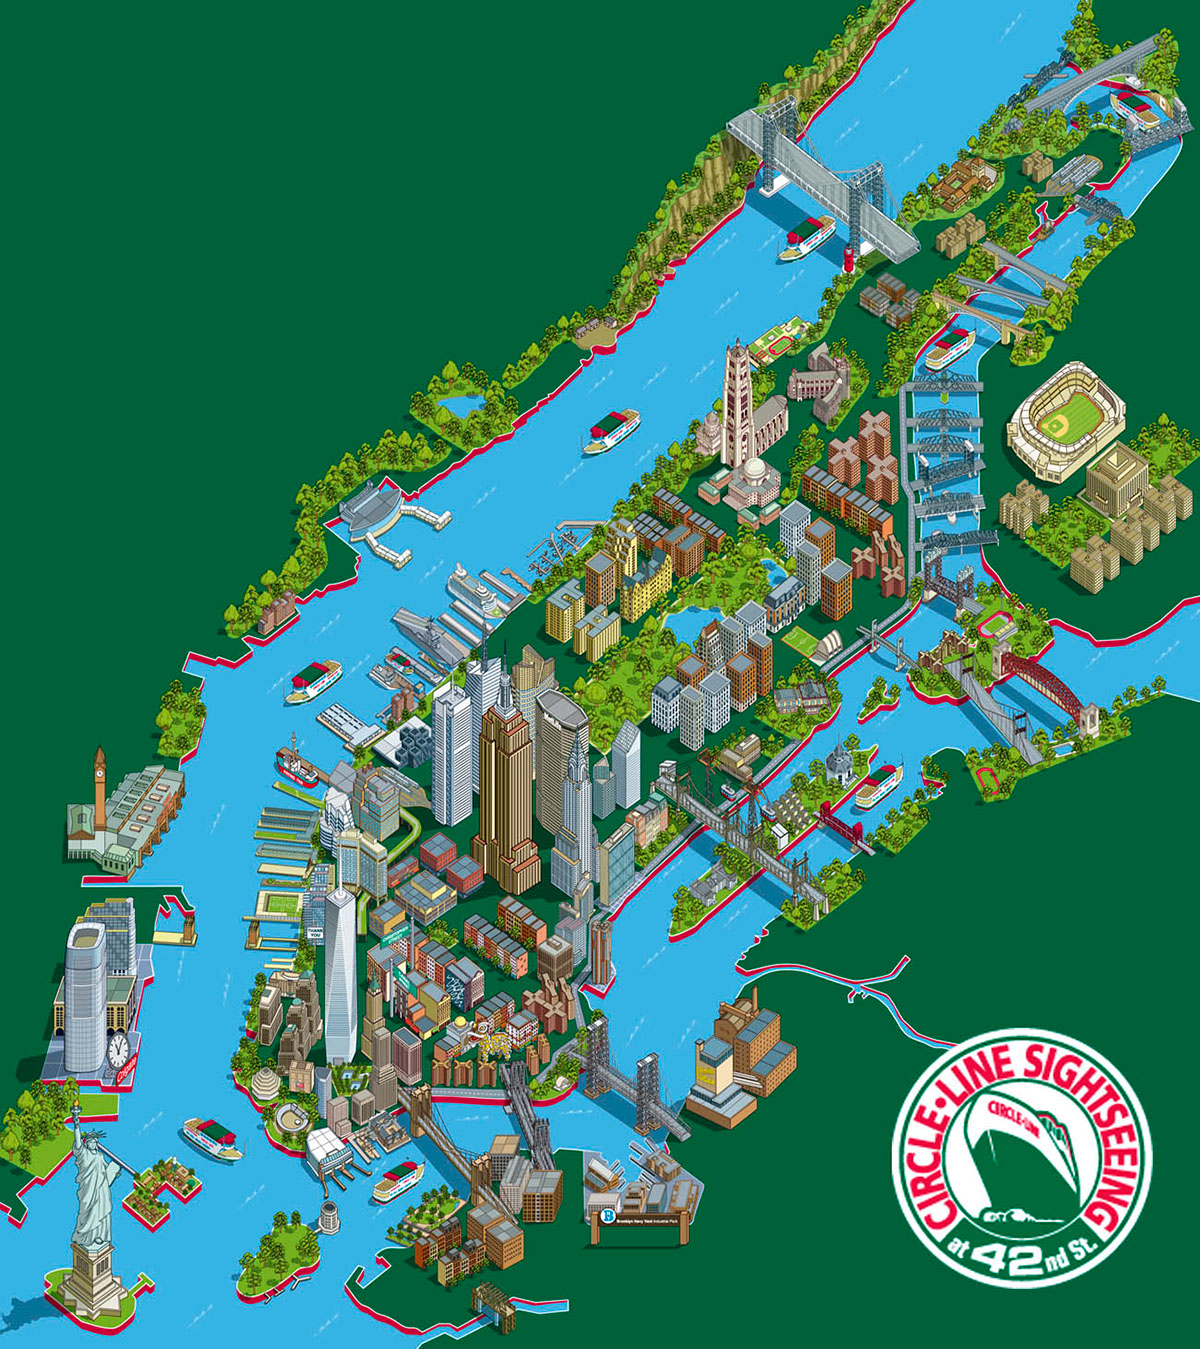 Circle Line 101 New York Sights Illustrated Map on Behance – Tourist Map Nyc